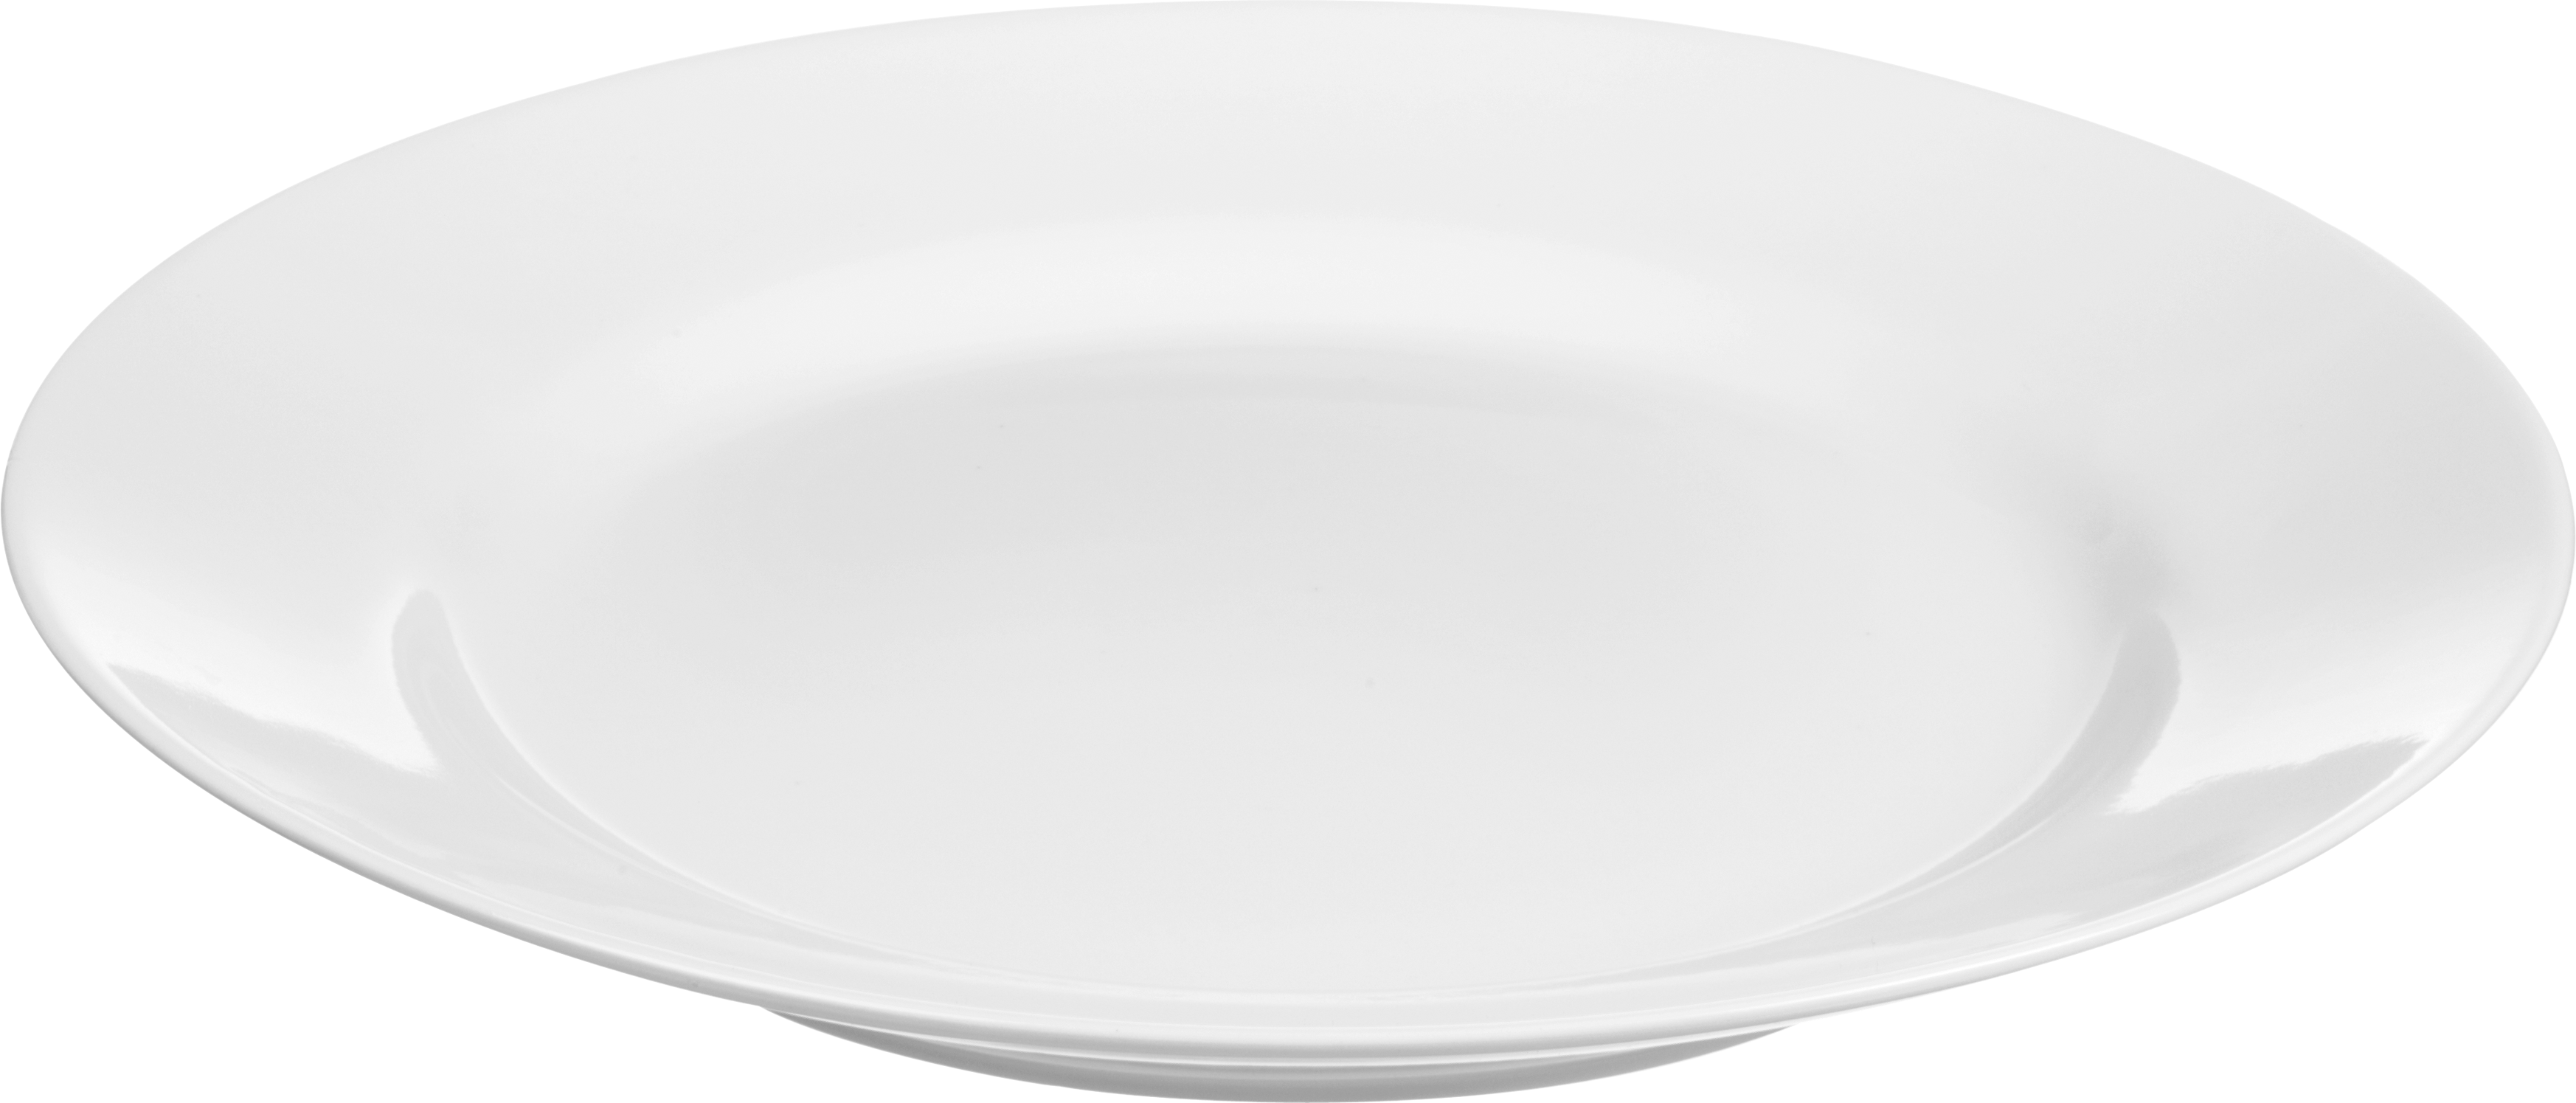 Plate clipart stack plate. White png image pinterest